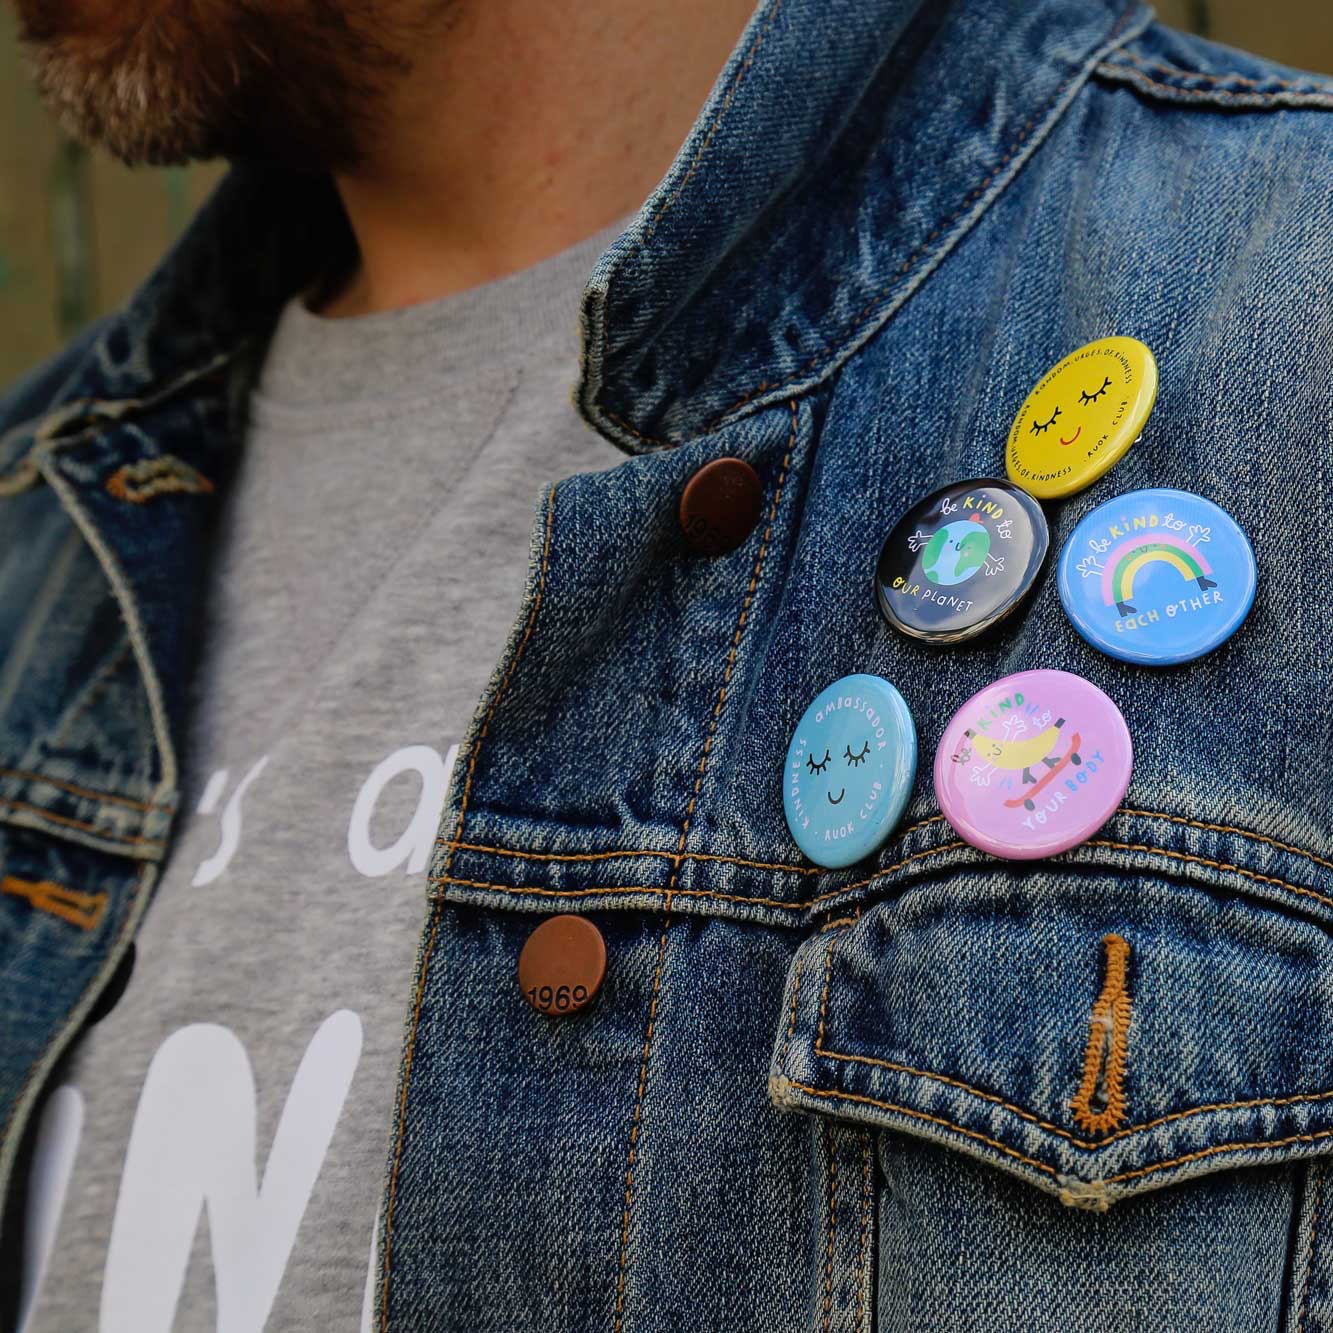 Rainbow Button Badge - The Wee Store Brighton Children's Clothing & Gifts